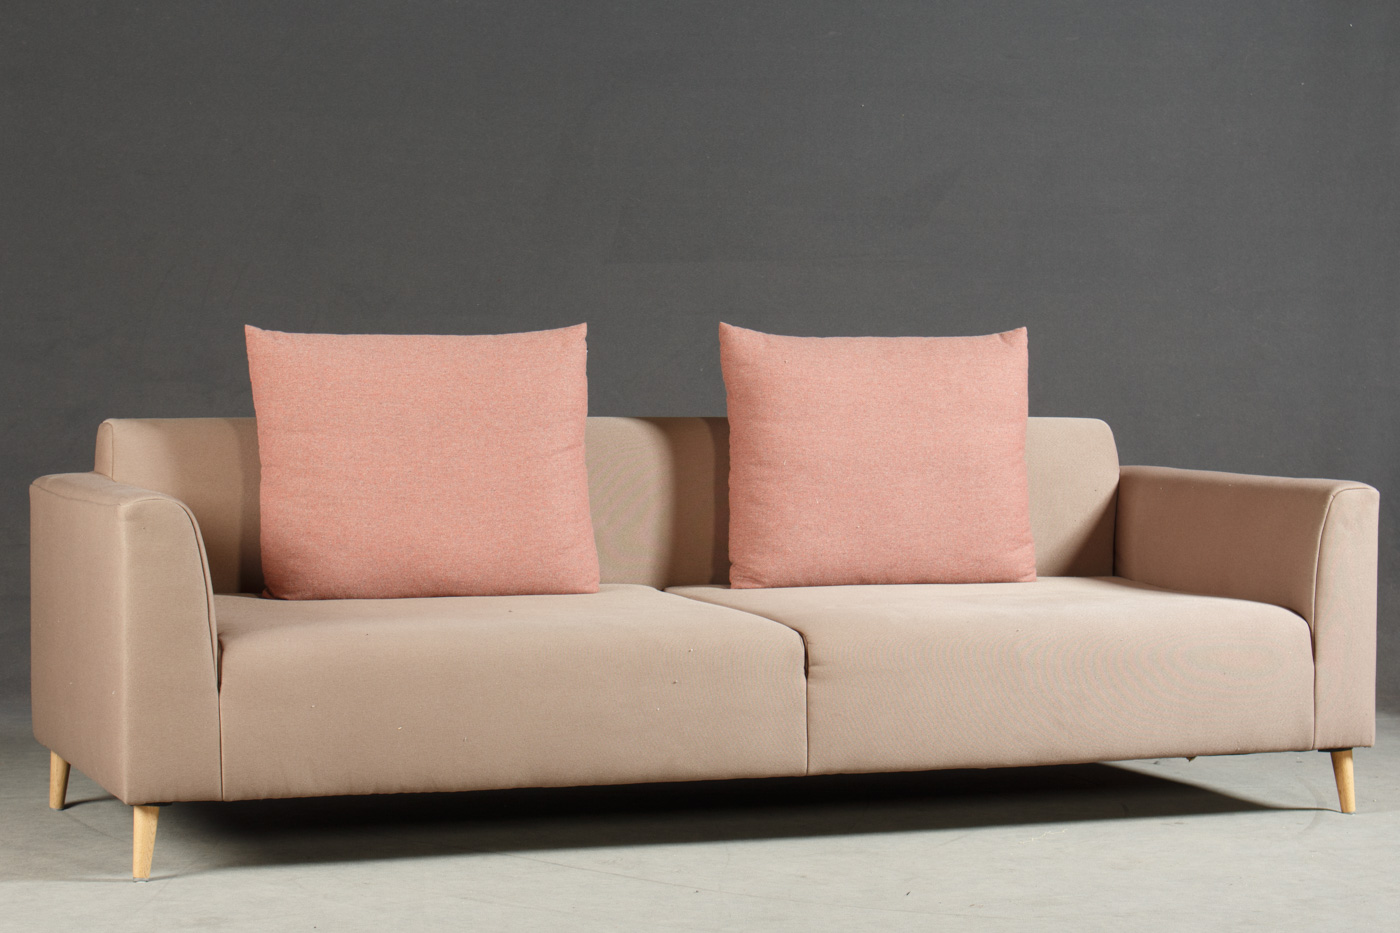 rolf benz freistil sofa no 180 grey leather sofas harveys a three seater lauritz com trepersoners click here to see larger picture